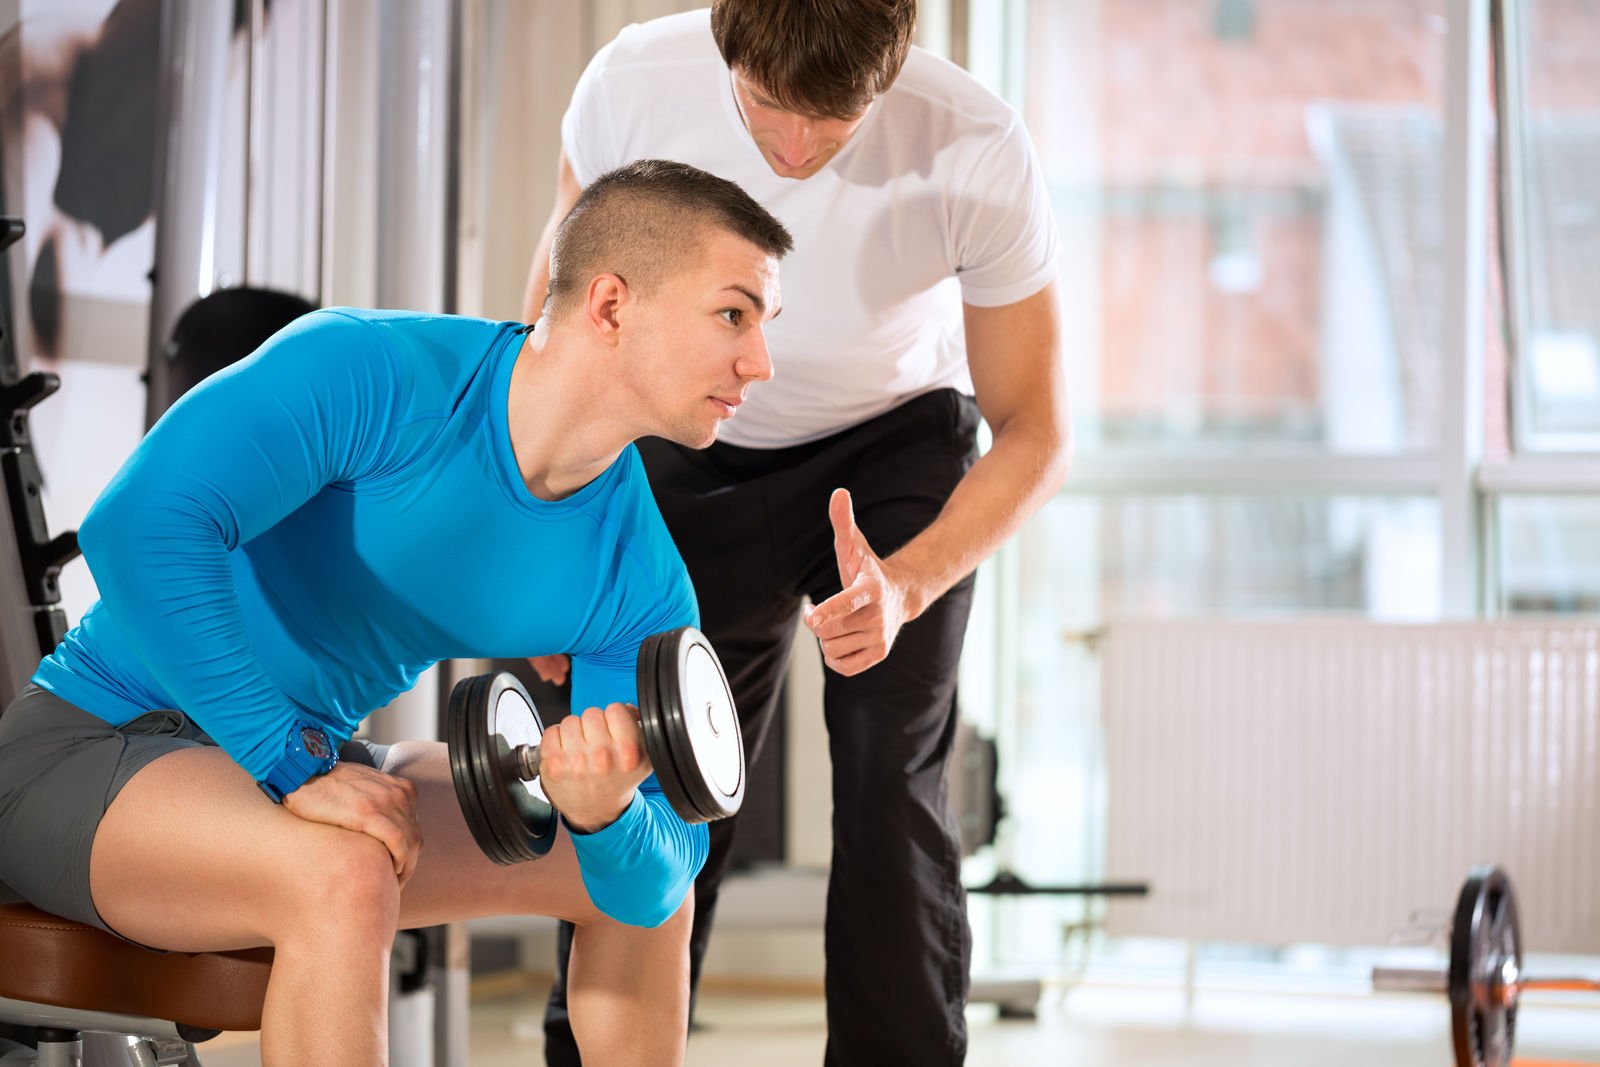 How to Get Personal Trainer Experience